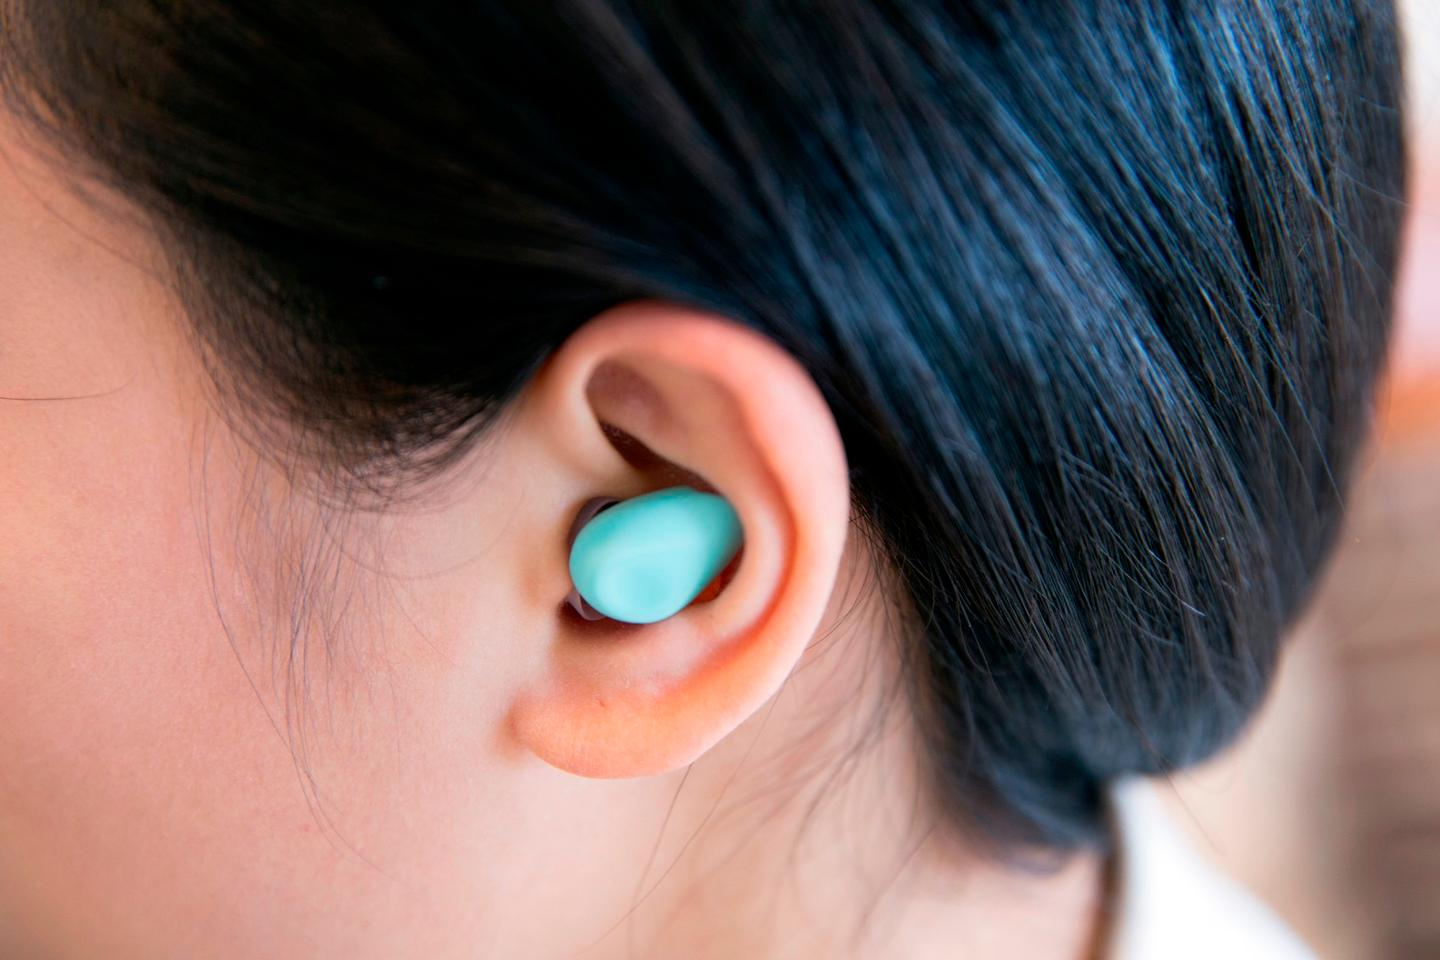 The Yono has a layer of soft silicon whichhelps it sit comfortable within the ear throughout the night